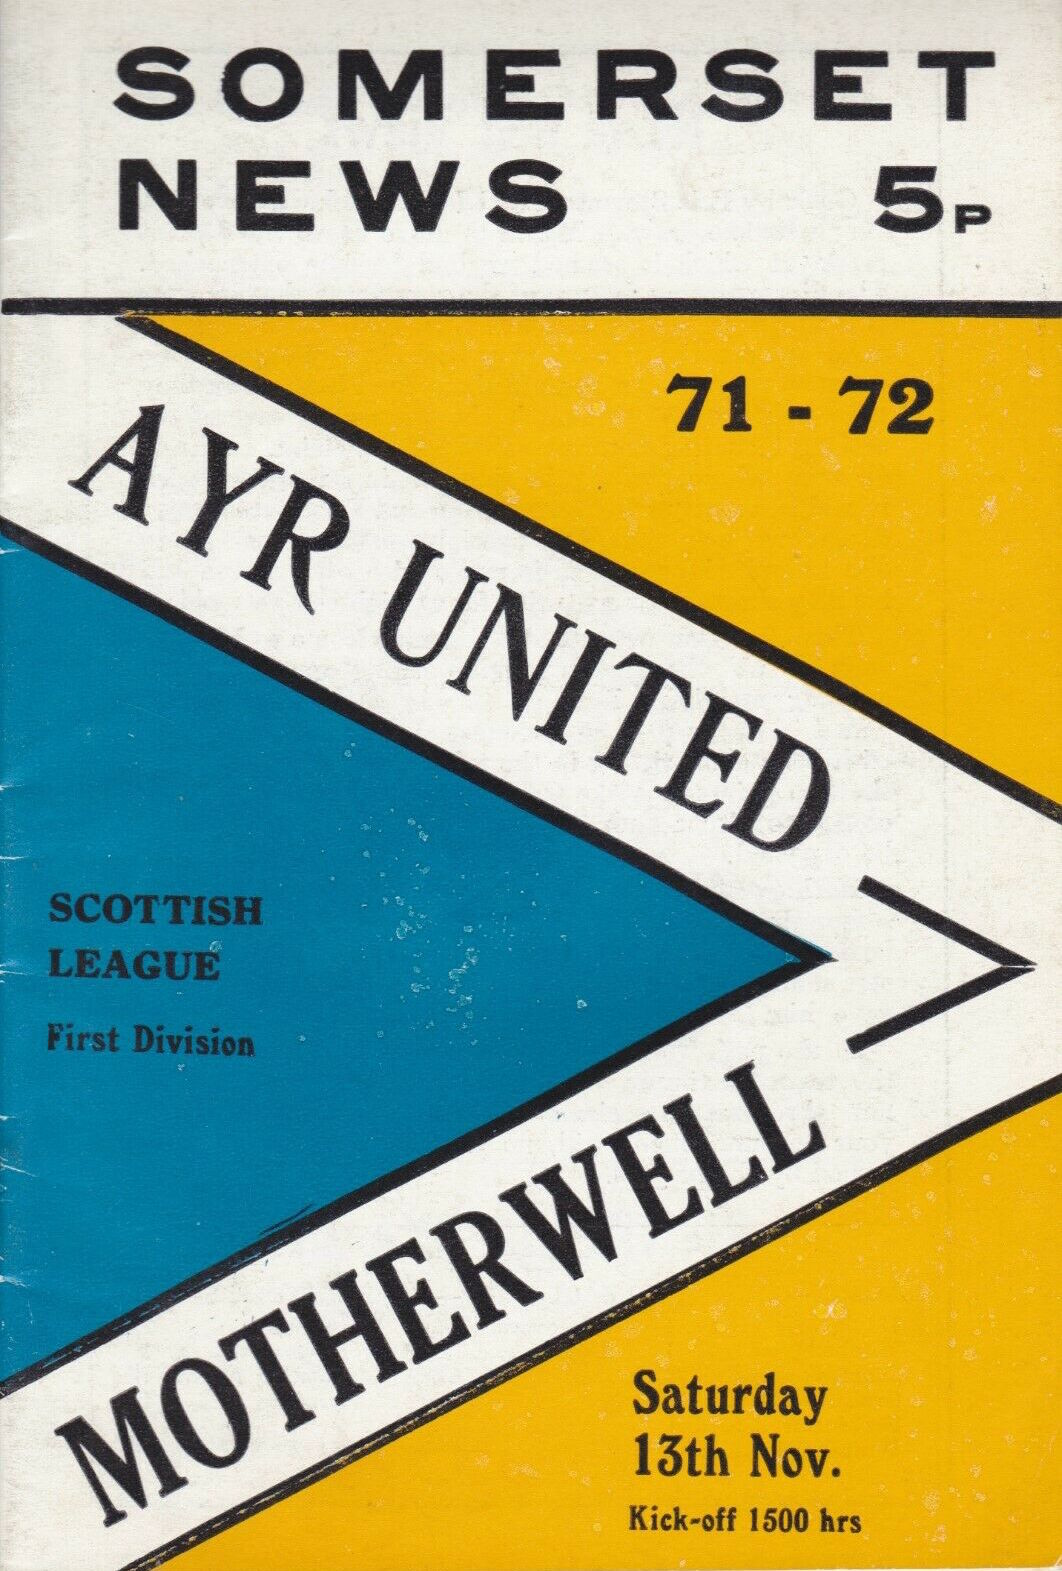 versus Ayr United Programme Cover